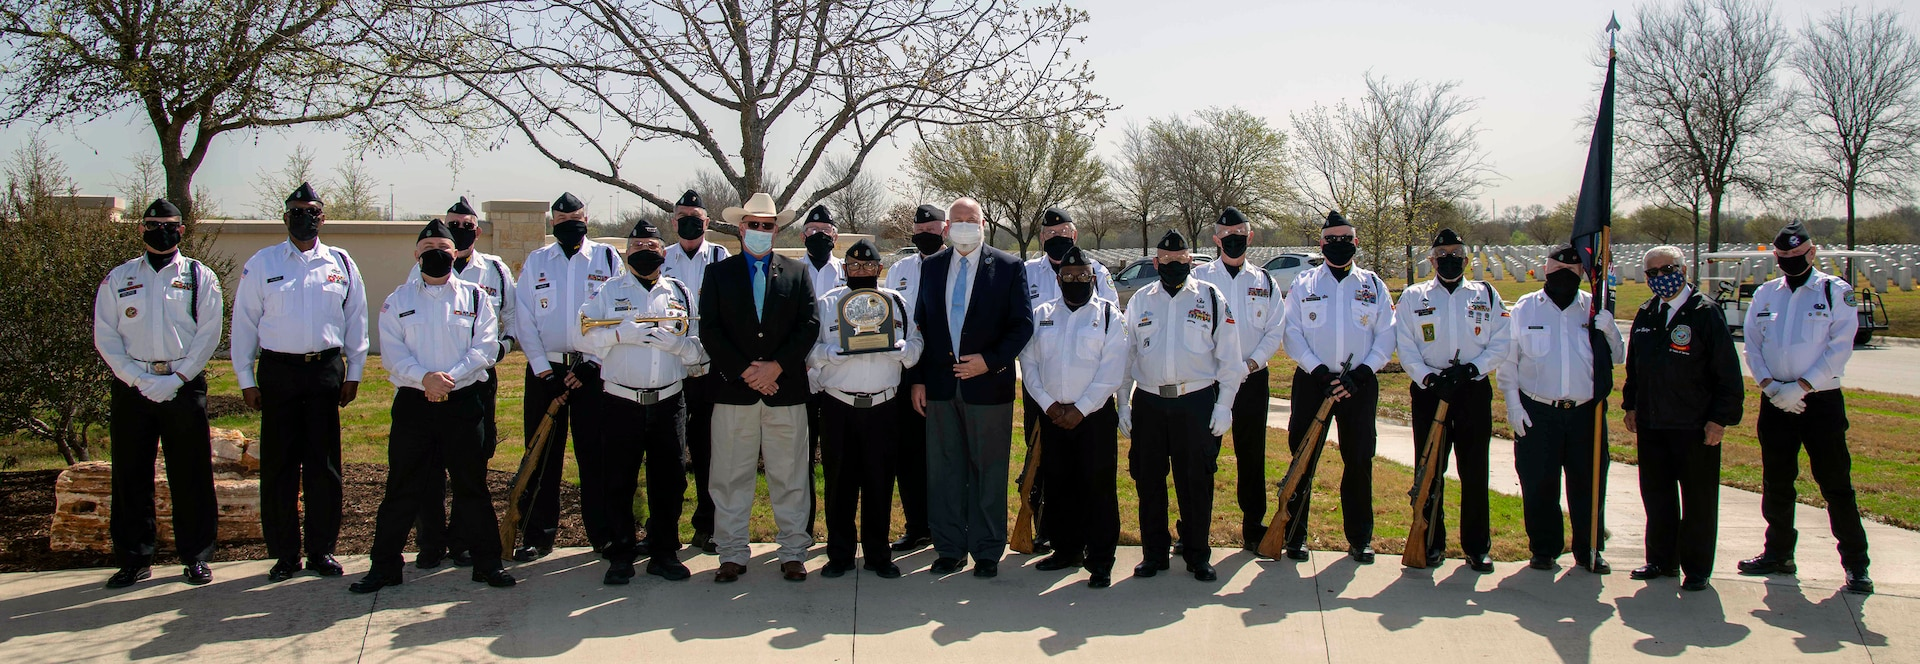 Members of the Fort Sam Houston Memorial Services Detachment, along with Robert C. (Bob) Winkler and Graham L. Wright III, assistant directors of the U.S. Department of Veterans Affairs National Cemetery Administration Fort Sam Houston National Cemetery, pose for a photo at the Fort Sam Houston National Cemetery in San Antonio March 15. A ceremony was held to commemorate the detachment's 40,000th funeral service.